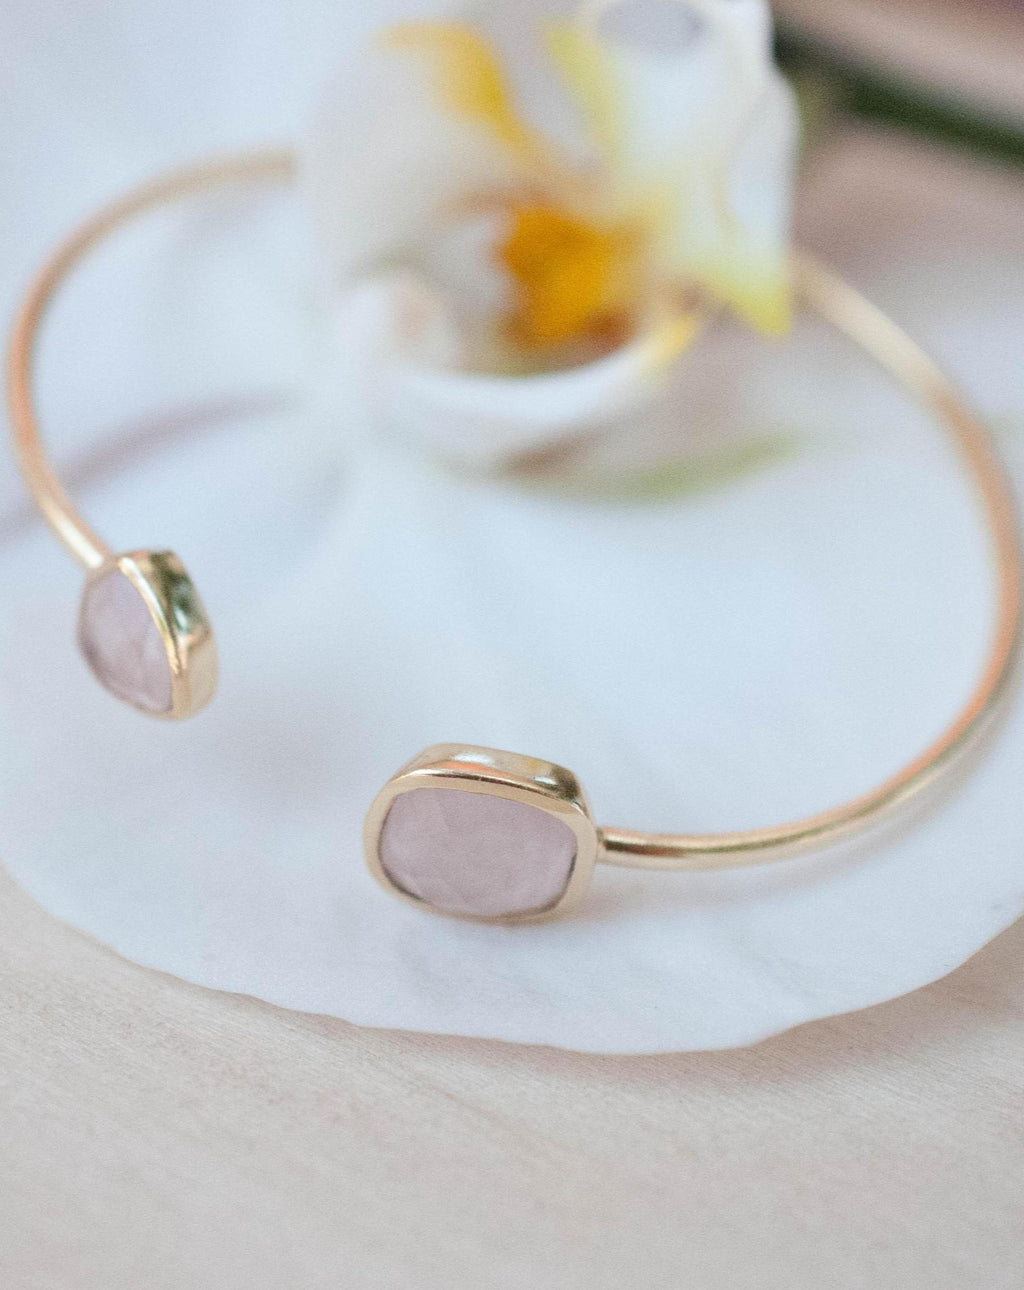 Rose Quartz Bangle Bracelet * Gold Plated 18k or Silver Plated * Gemstone * Gypsy * Hippie * Adjustable * Statement *  Stacking * BJB004A